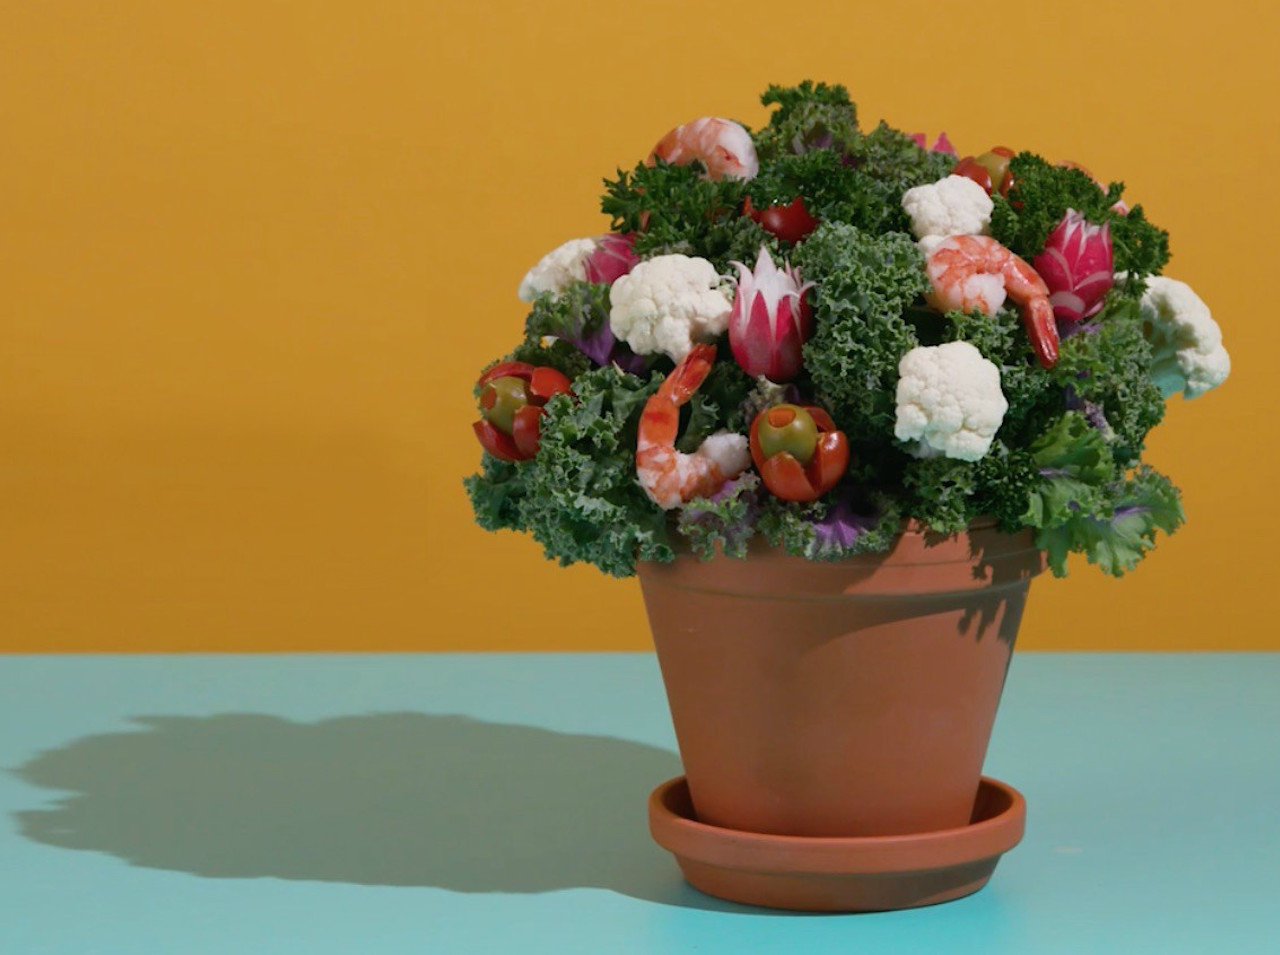 Nibble tree: A 1966 party appetizer remake of kale leaves, radish flowers, shrimp and olive-sytuffed tomatoes as a floral arrangement in a clay pot